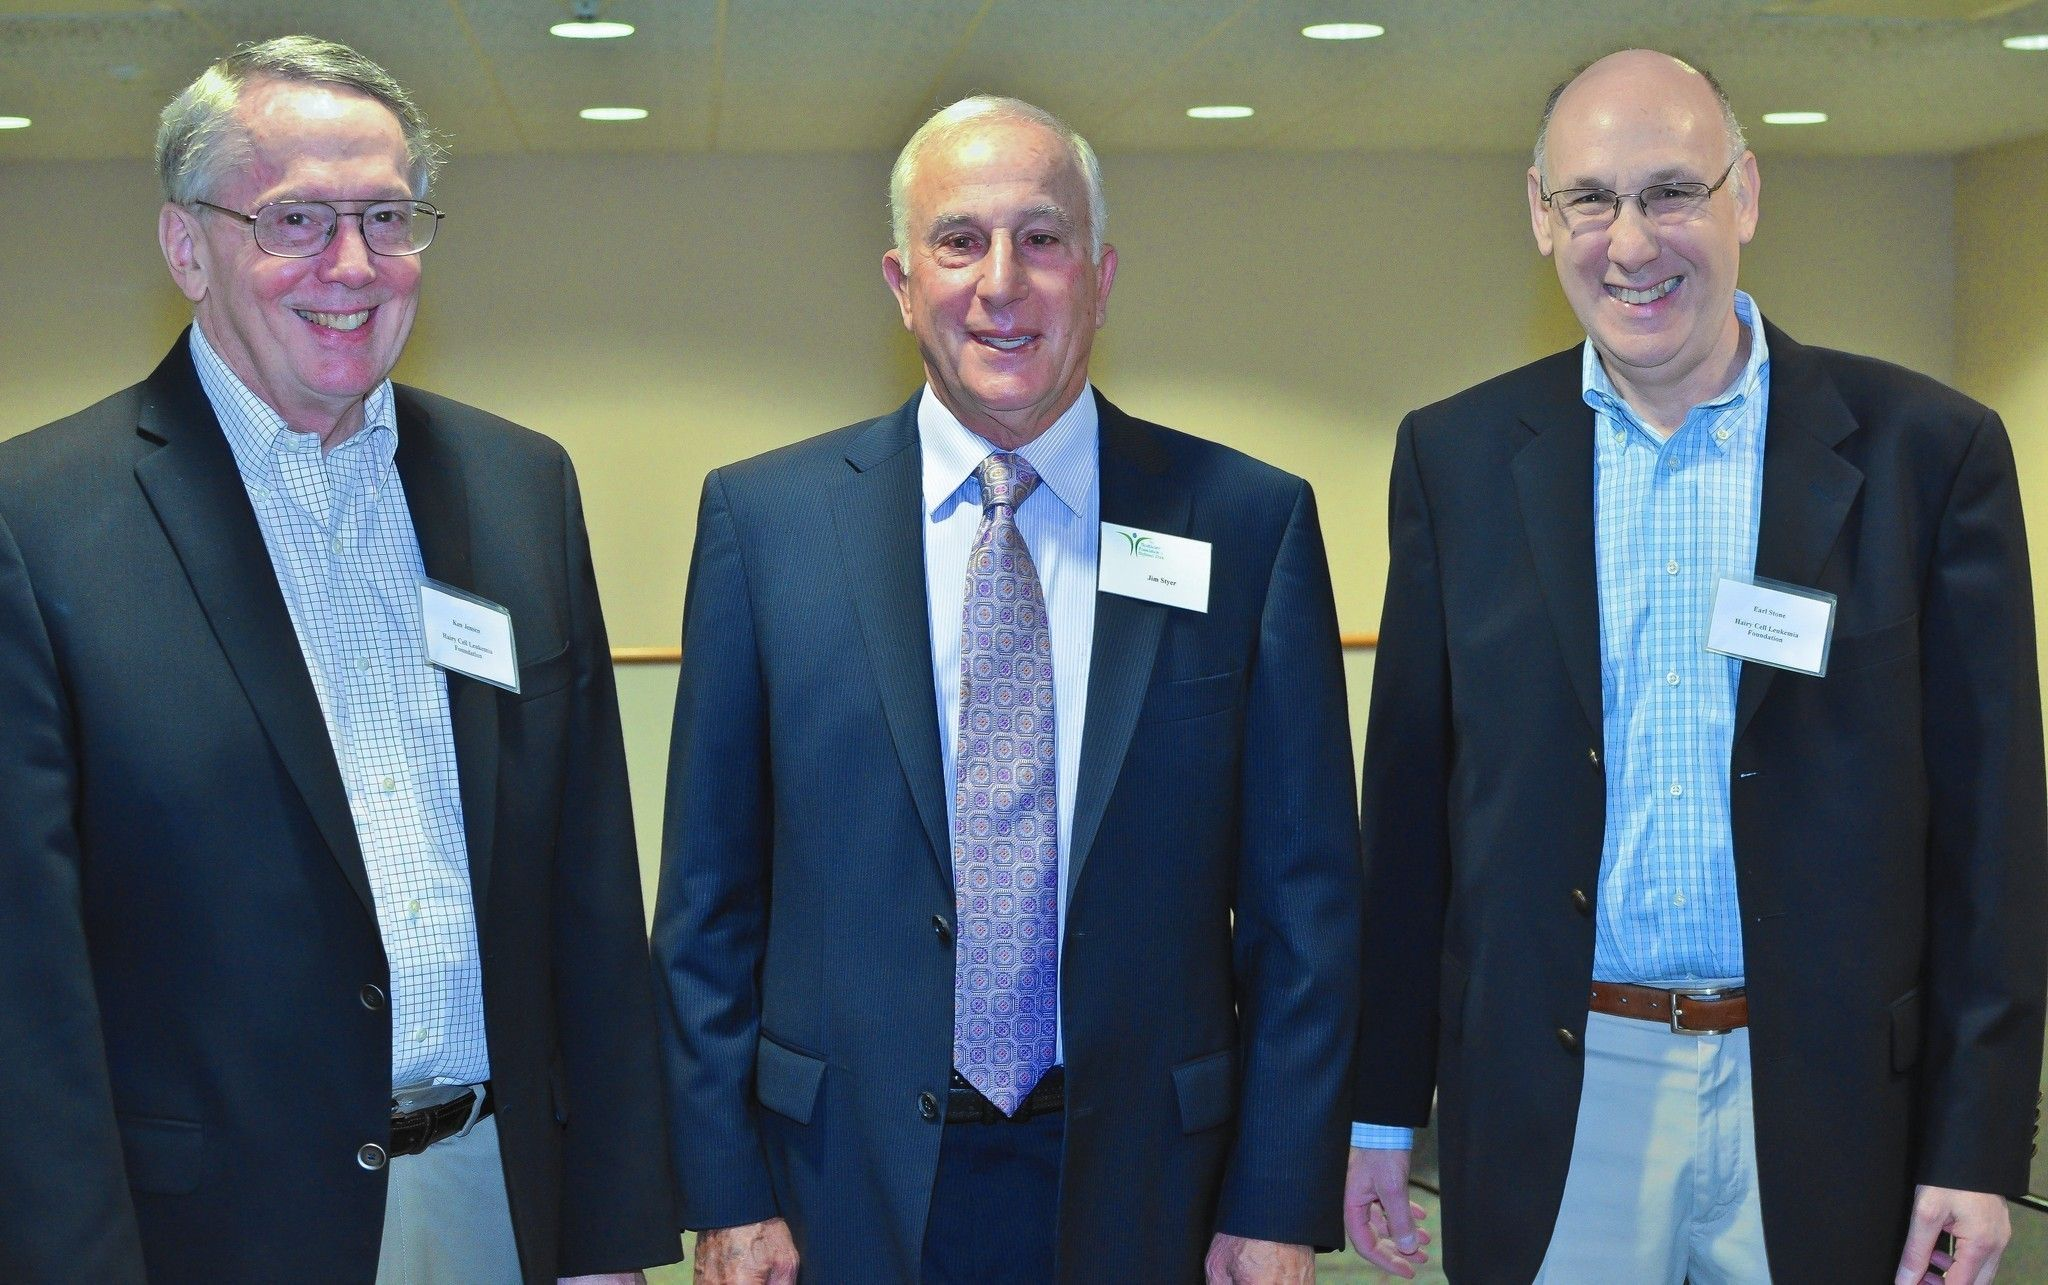 Healthcare Foundation hosts networking event  2nd Annual Networking Breakfast  http://www.chicagotribune.com/suburbs/evanston/lifestyles/ct-hpn-trend-hphealth-tl-0709-20150701-story.html